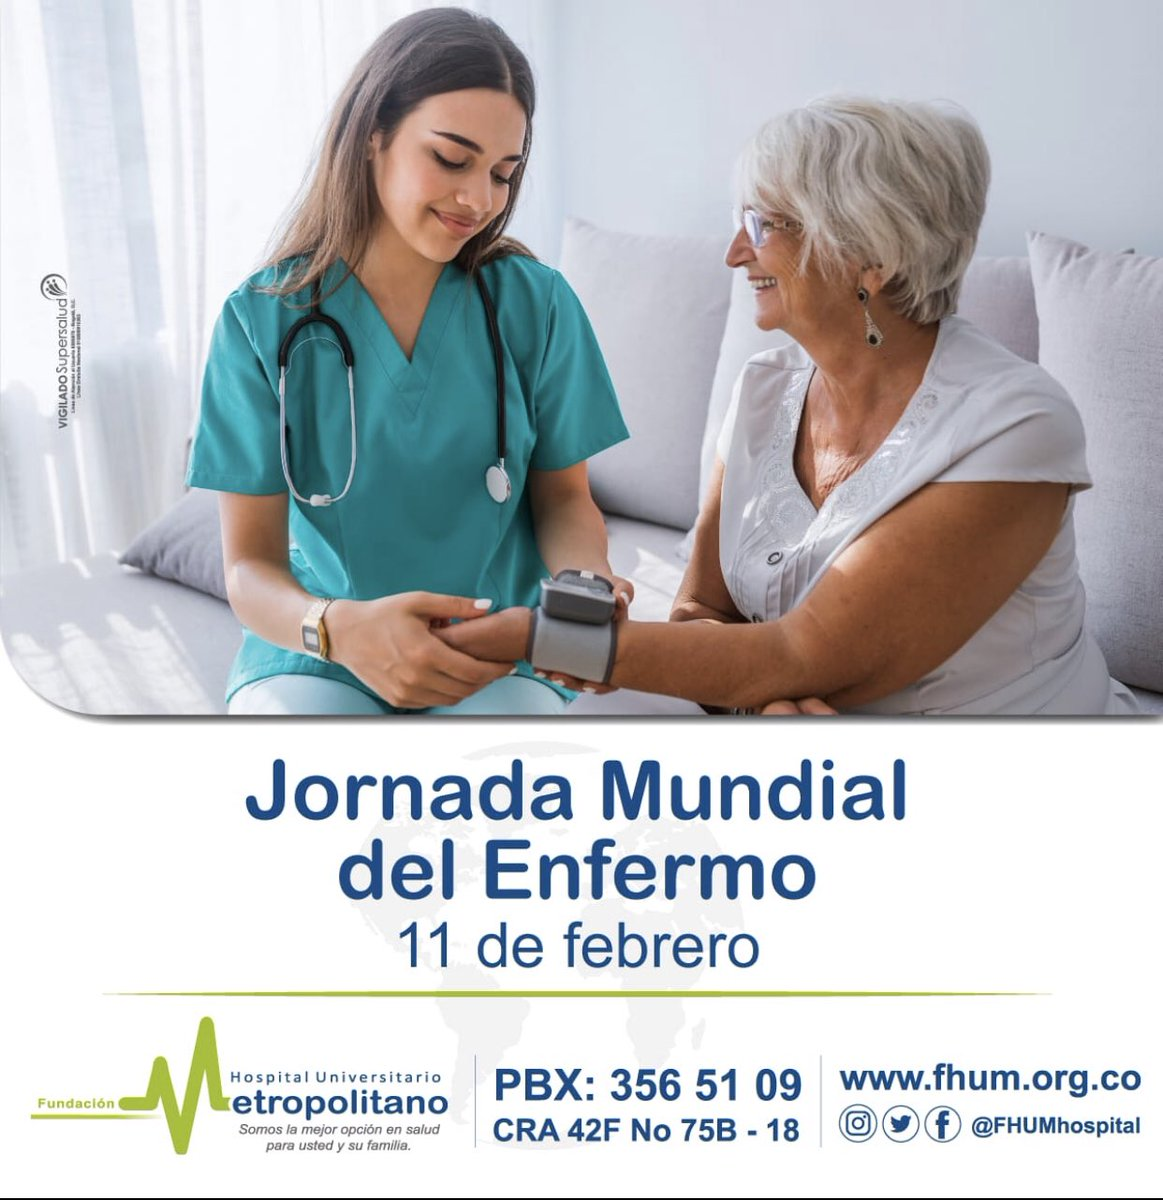 Fundación Hospital Universitario Metropolitano's photo on #JornadaMundialDelEnfermo